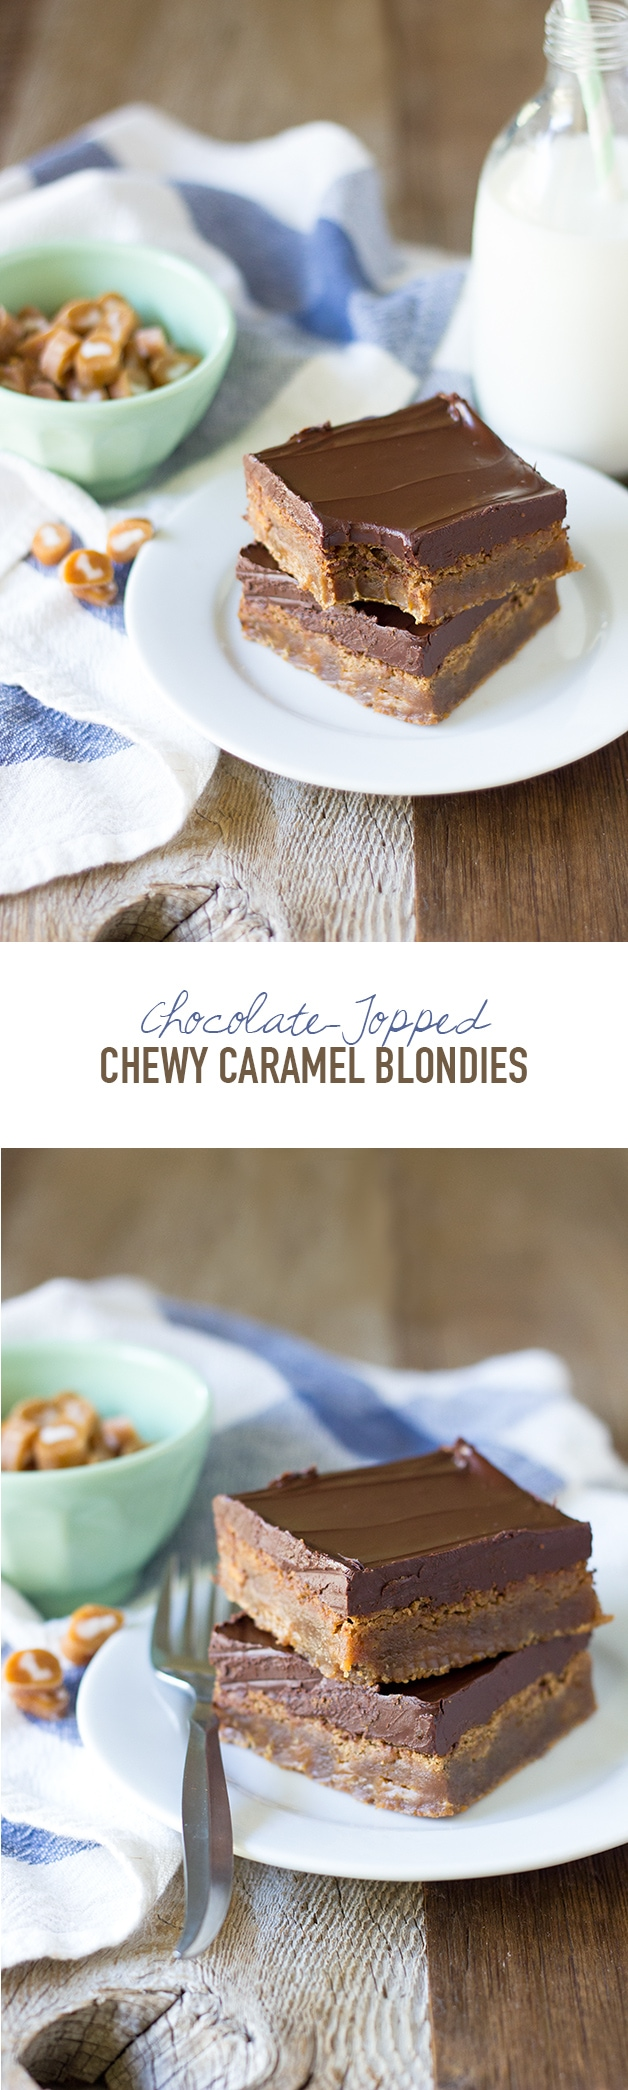 Chocolate-Topped Chewy Caramel Blondies | www.brighteyedbaker.com